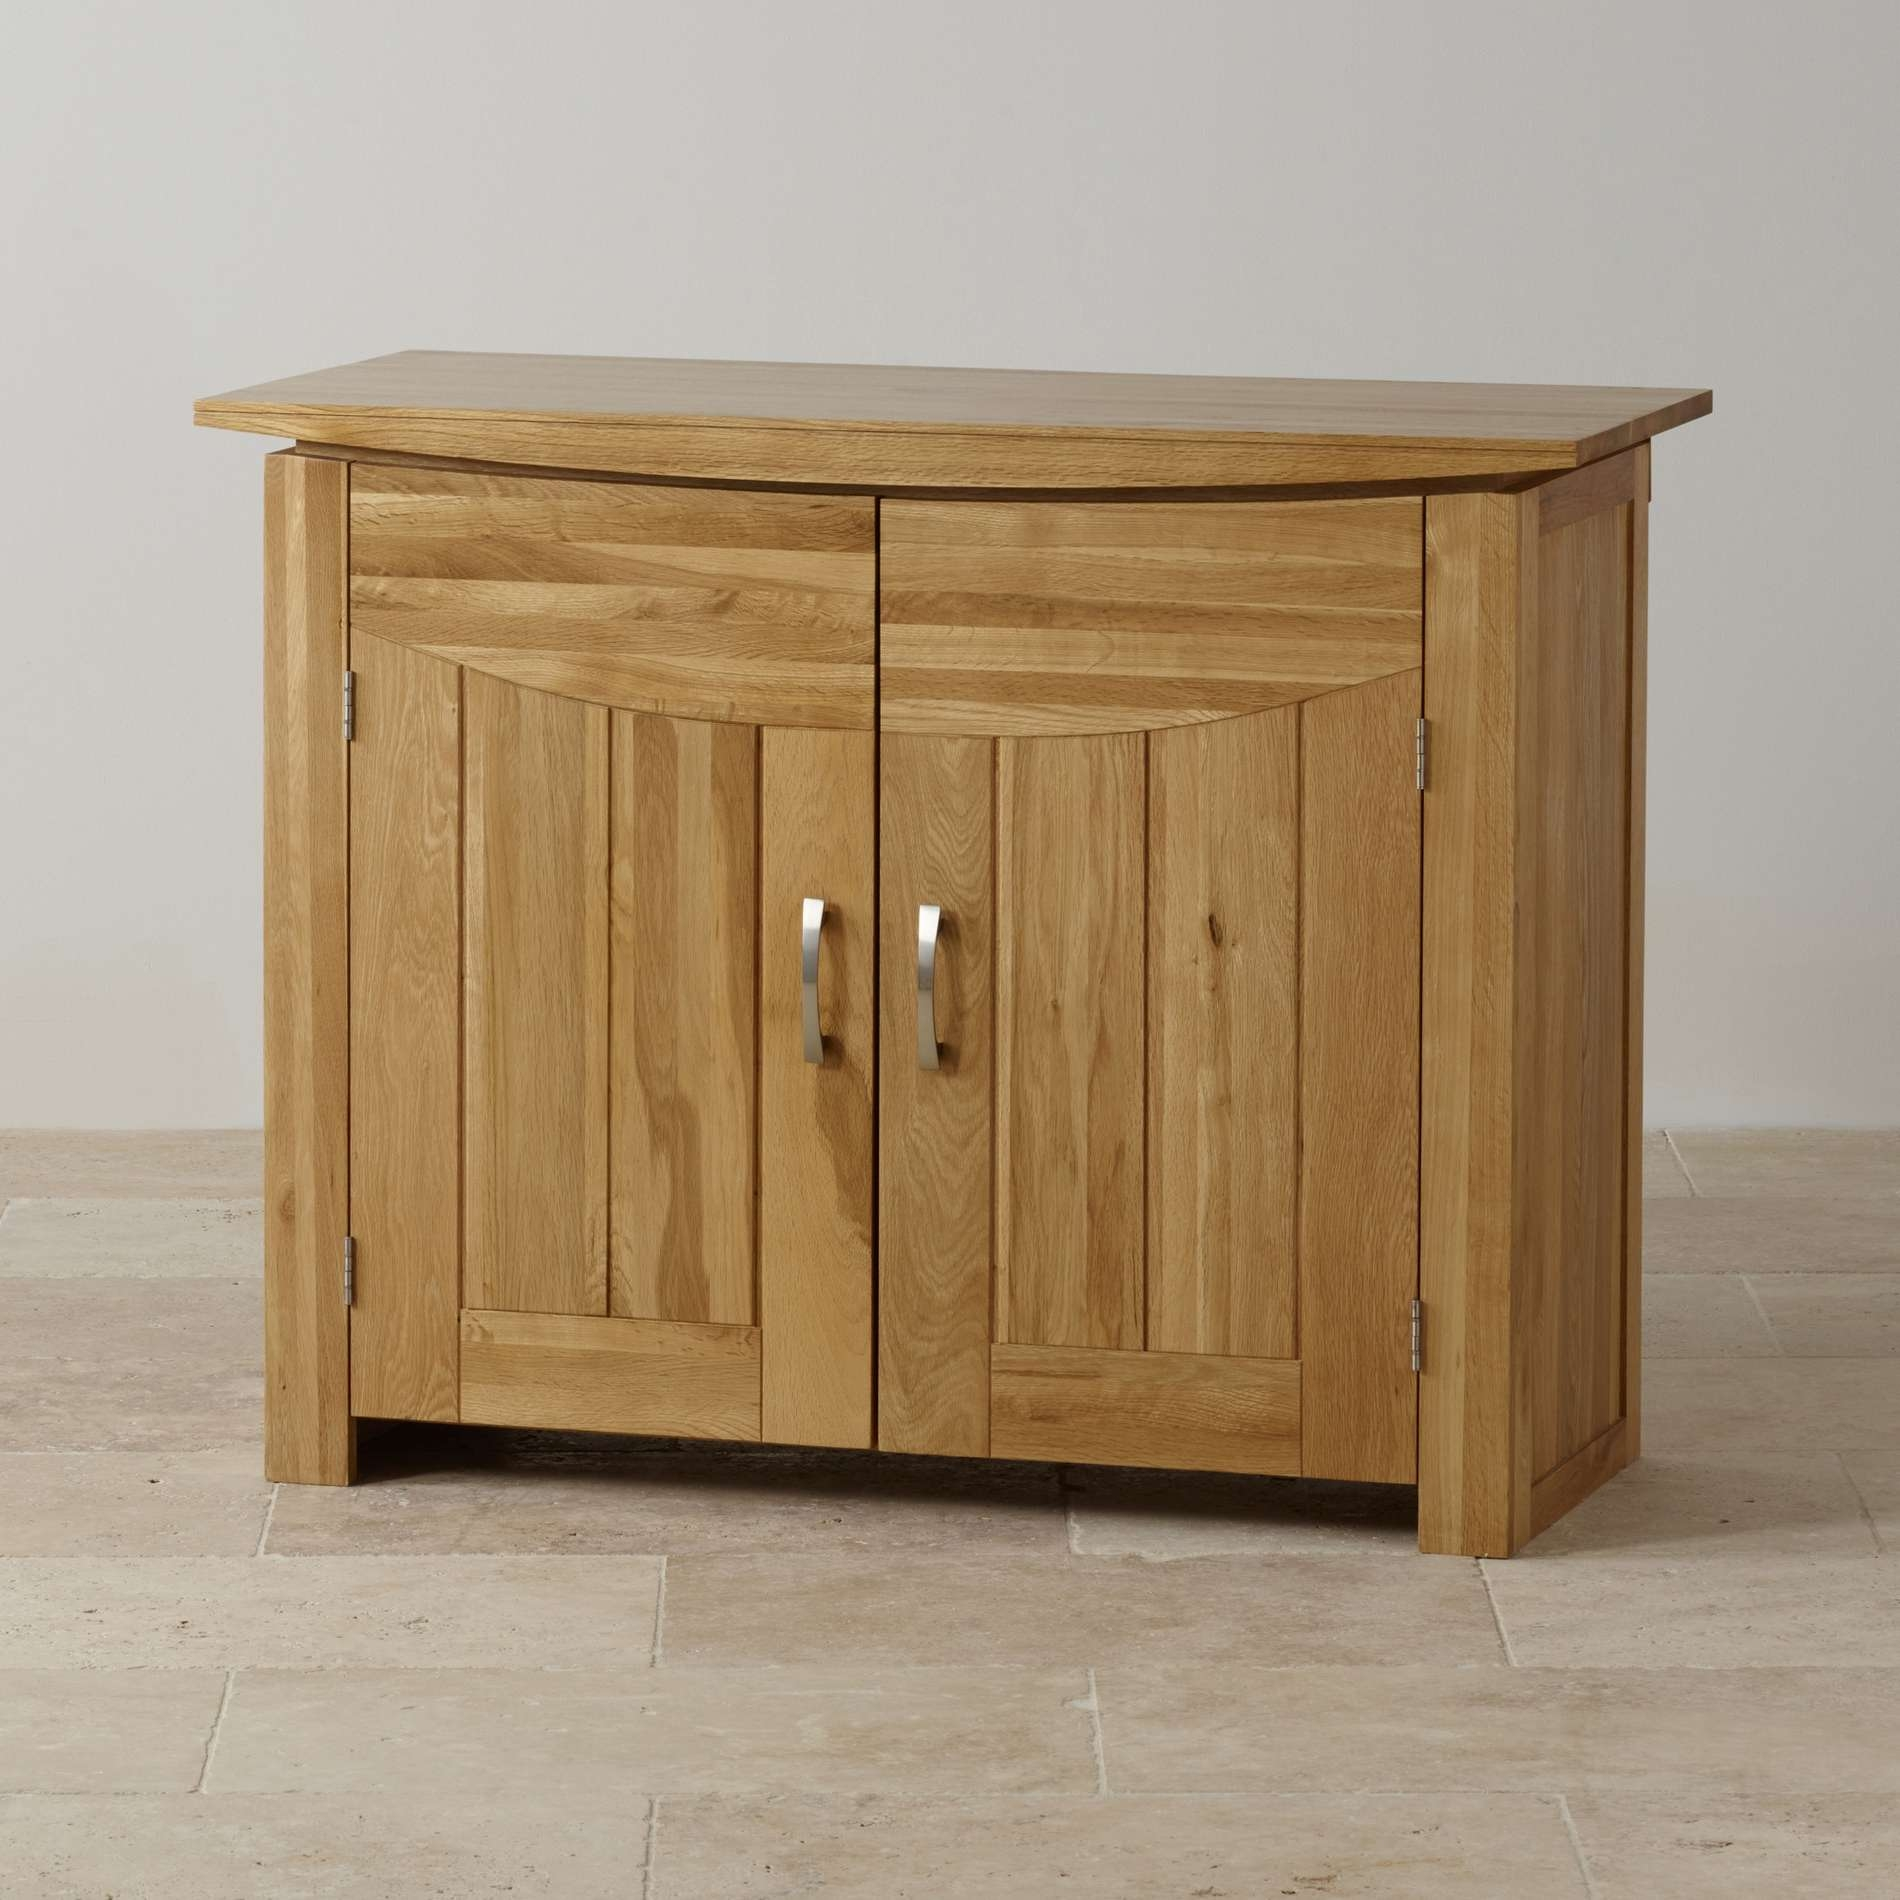 Elegant Small Solid Oak Sideboard – Buildsimplehome Inside Solid Oak Sideboards (View 6 of 20)